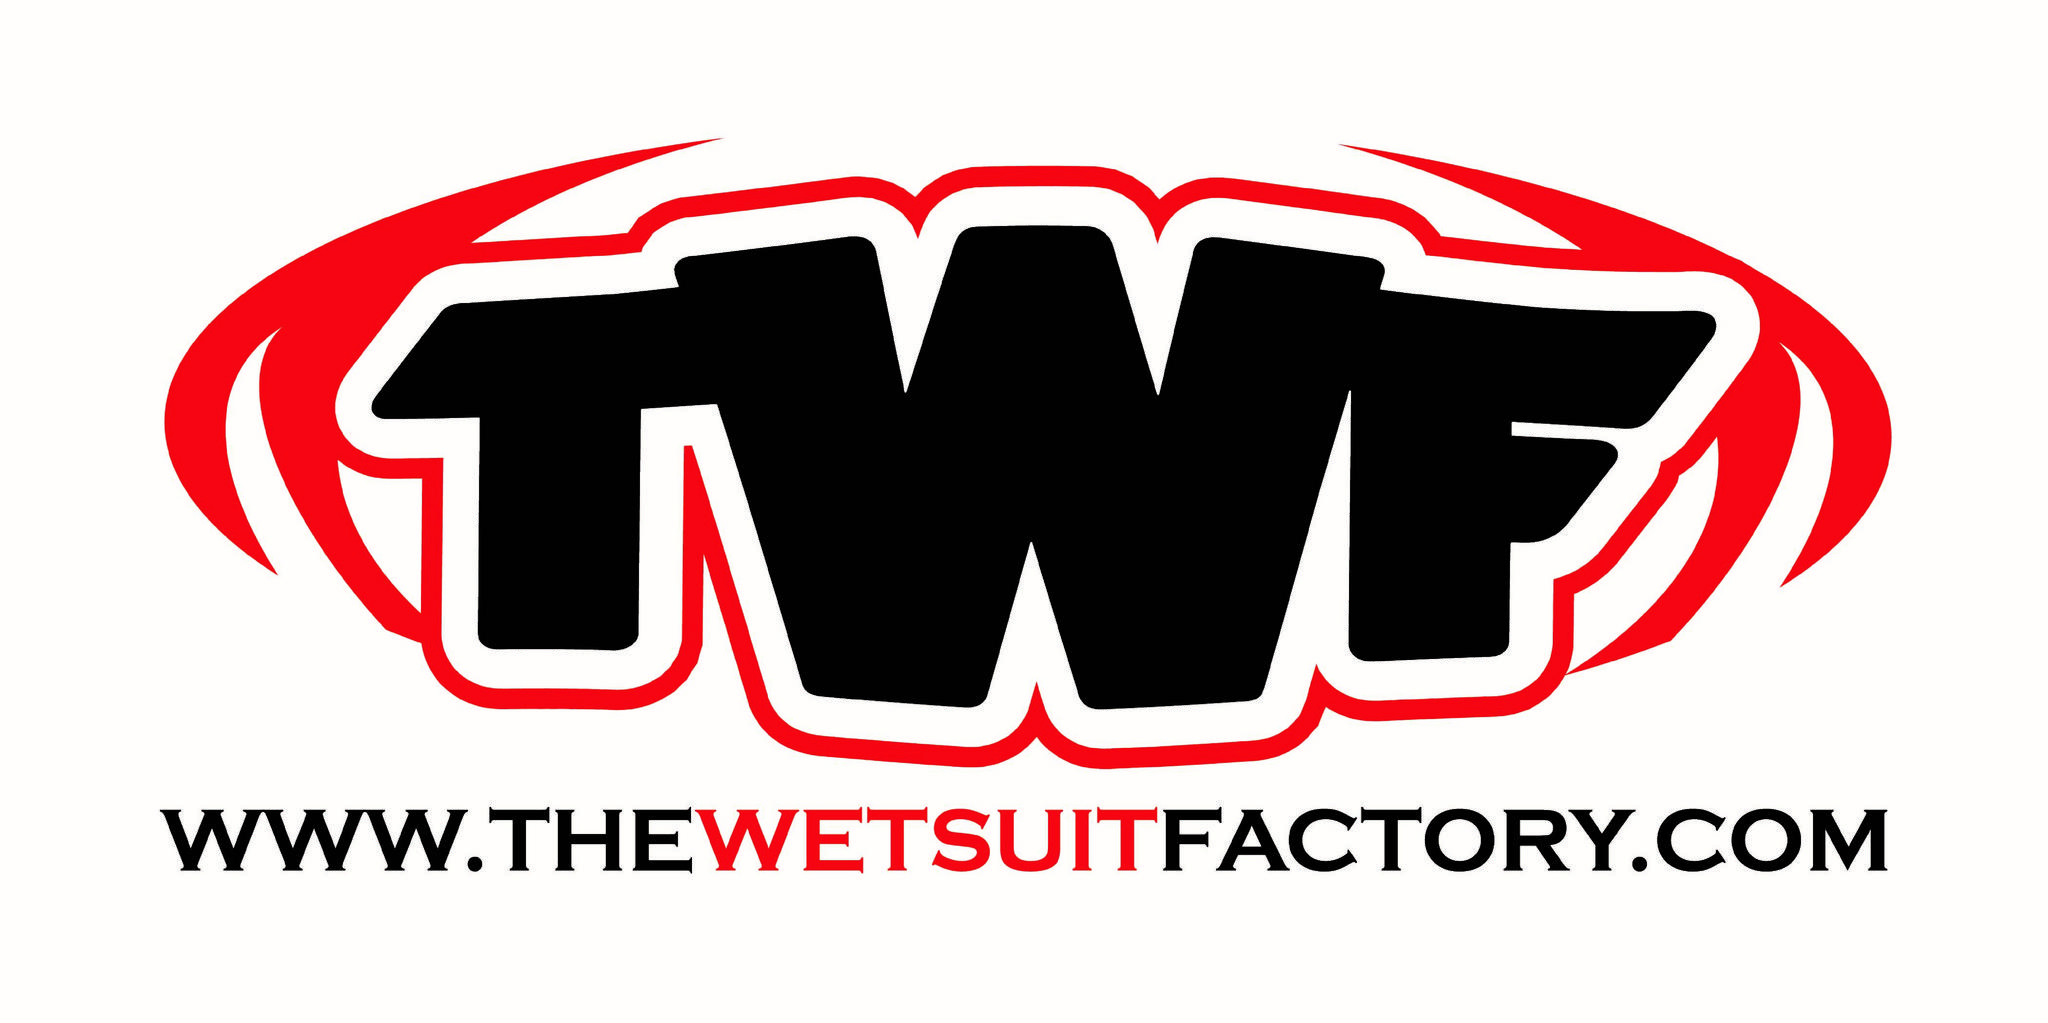 TWF International Ltd